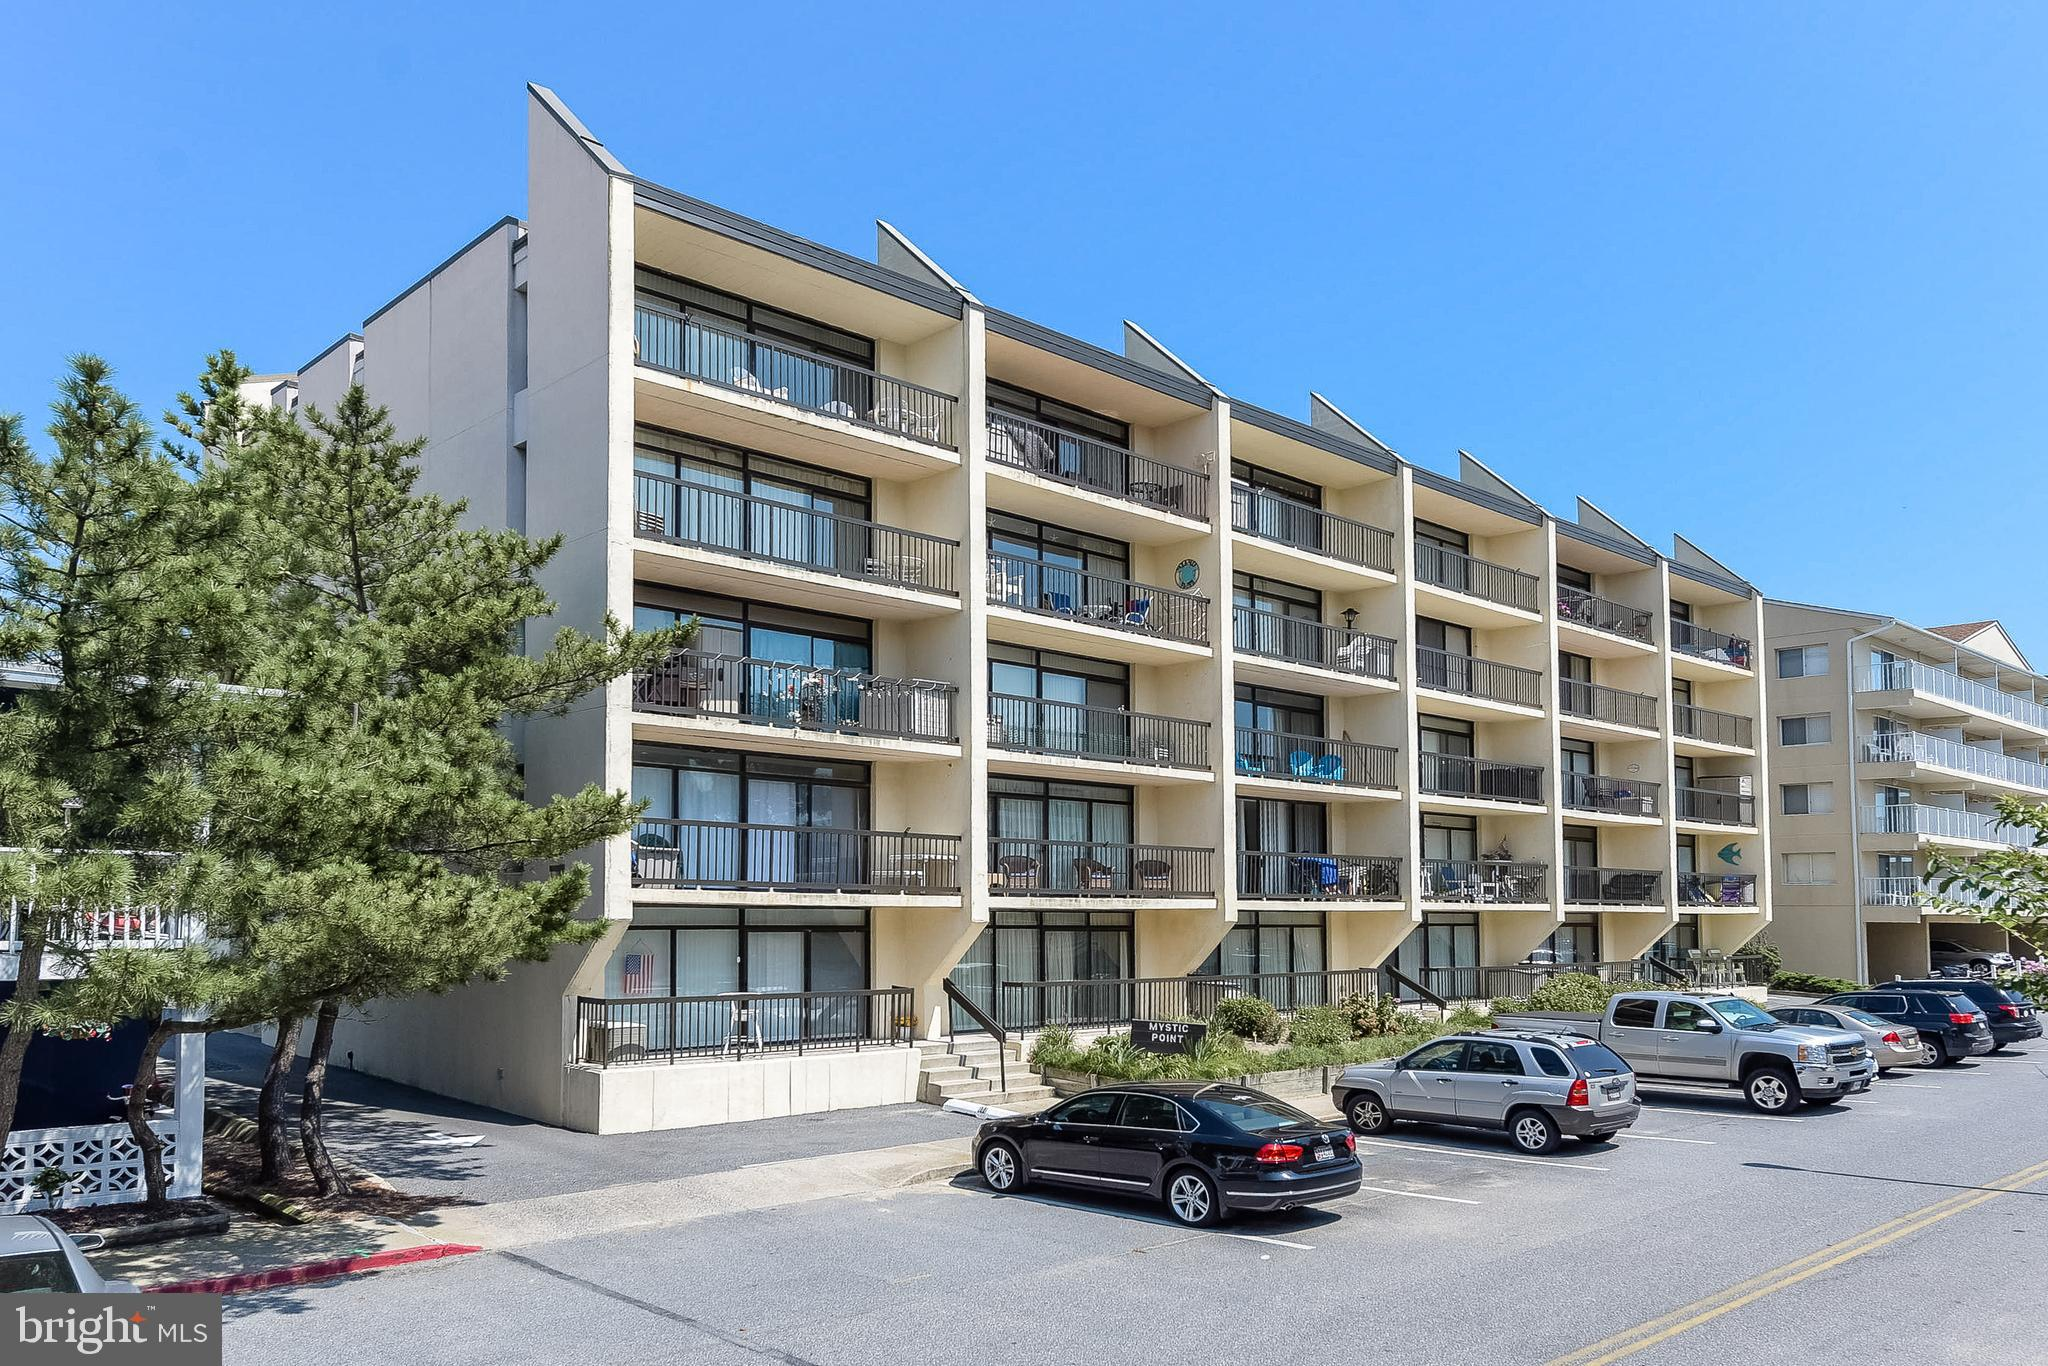 "Owner says ""will look at all offers so bring us one!"" for this Great Ocean Block 2 bed/2 bath Condo in Masonry Building with an Elevator!  Large living room opens to balcony with views of ocean and southern exposure. New HVAC still under warranty (2018), new bathroom fixtures (2017), flooring (2015), washer/dryer (2013),  electrical outlet/plugs (2017) and newer bathroom updates including toilets, sinks and tubs. Plus recently painted. Excellent location in mid-town, close to so much including the Convention Center. Lots of restaurants, shopping and entertainment just steps away. A low density beach means less crowding. Owner's didn't rent, but could easily be a rental. All this plus low condo fees and strong condo association/management. Don't miss out on owning this as your new beach home!"